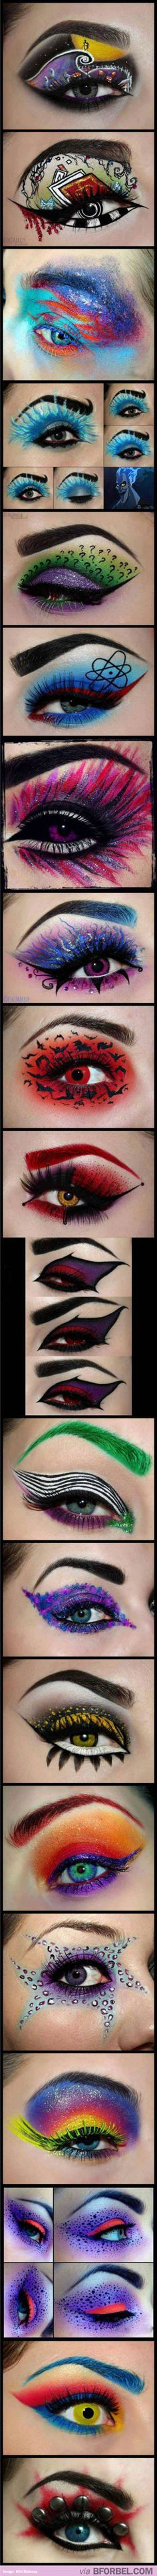 AMAZING Eye Make Up Inspired By Famous Characters… Can You Guess Them All?